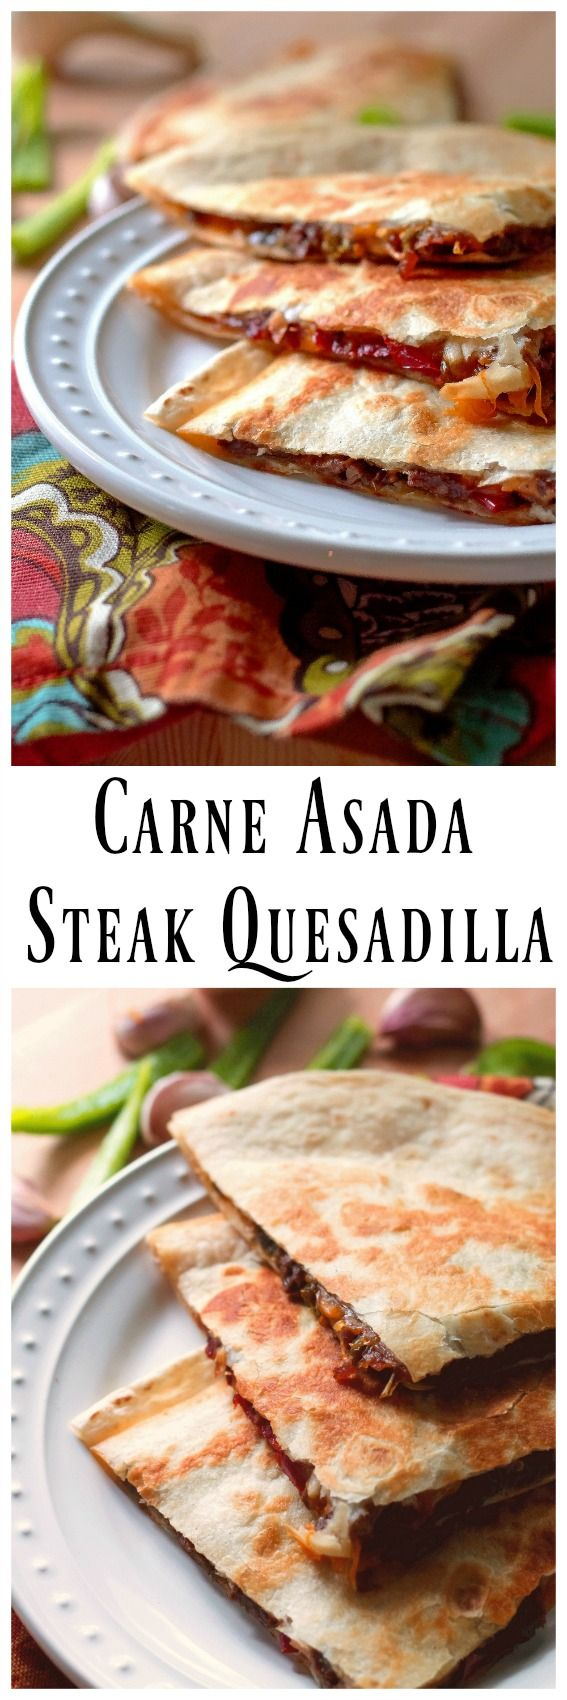 Carne Asada Steak Quesadilla has a steak , pepper and onion filling that is marinaded in a delicious concoction of flavors. This flavor infused filling combined with melted cheddar cheese on a crispy tortilla is CRAZY GOOD! via @https://www.pinterest.com/BunnysWarmOven/bunnys-warm-oven/